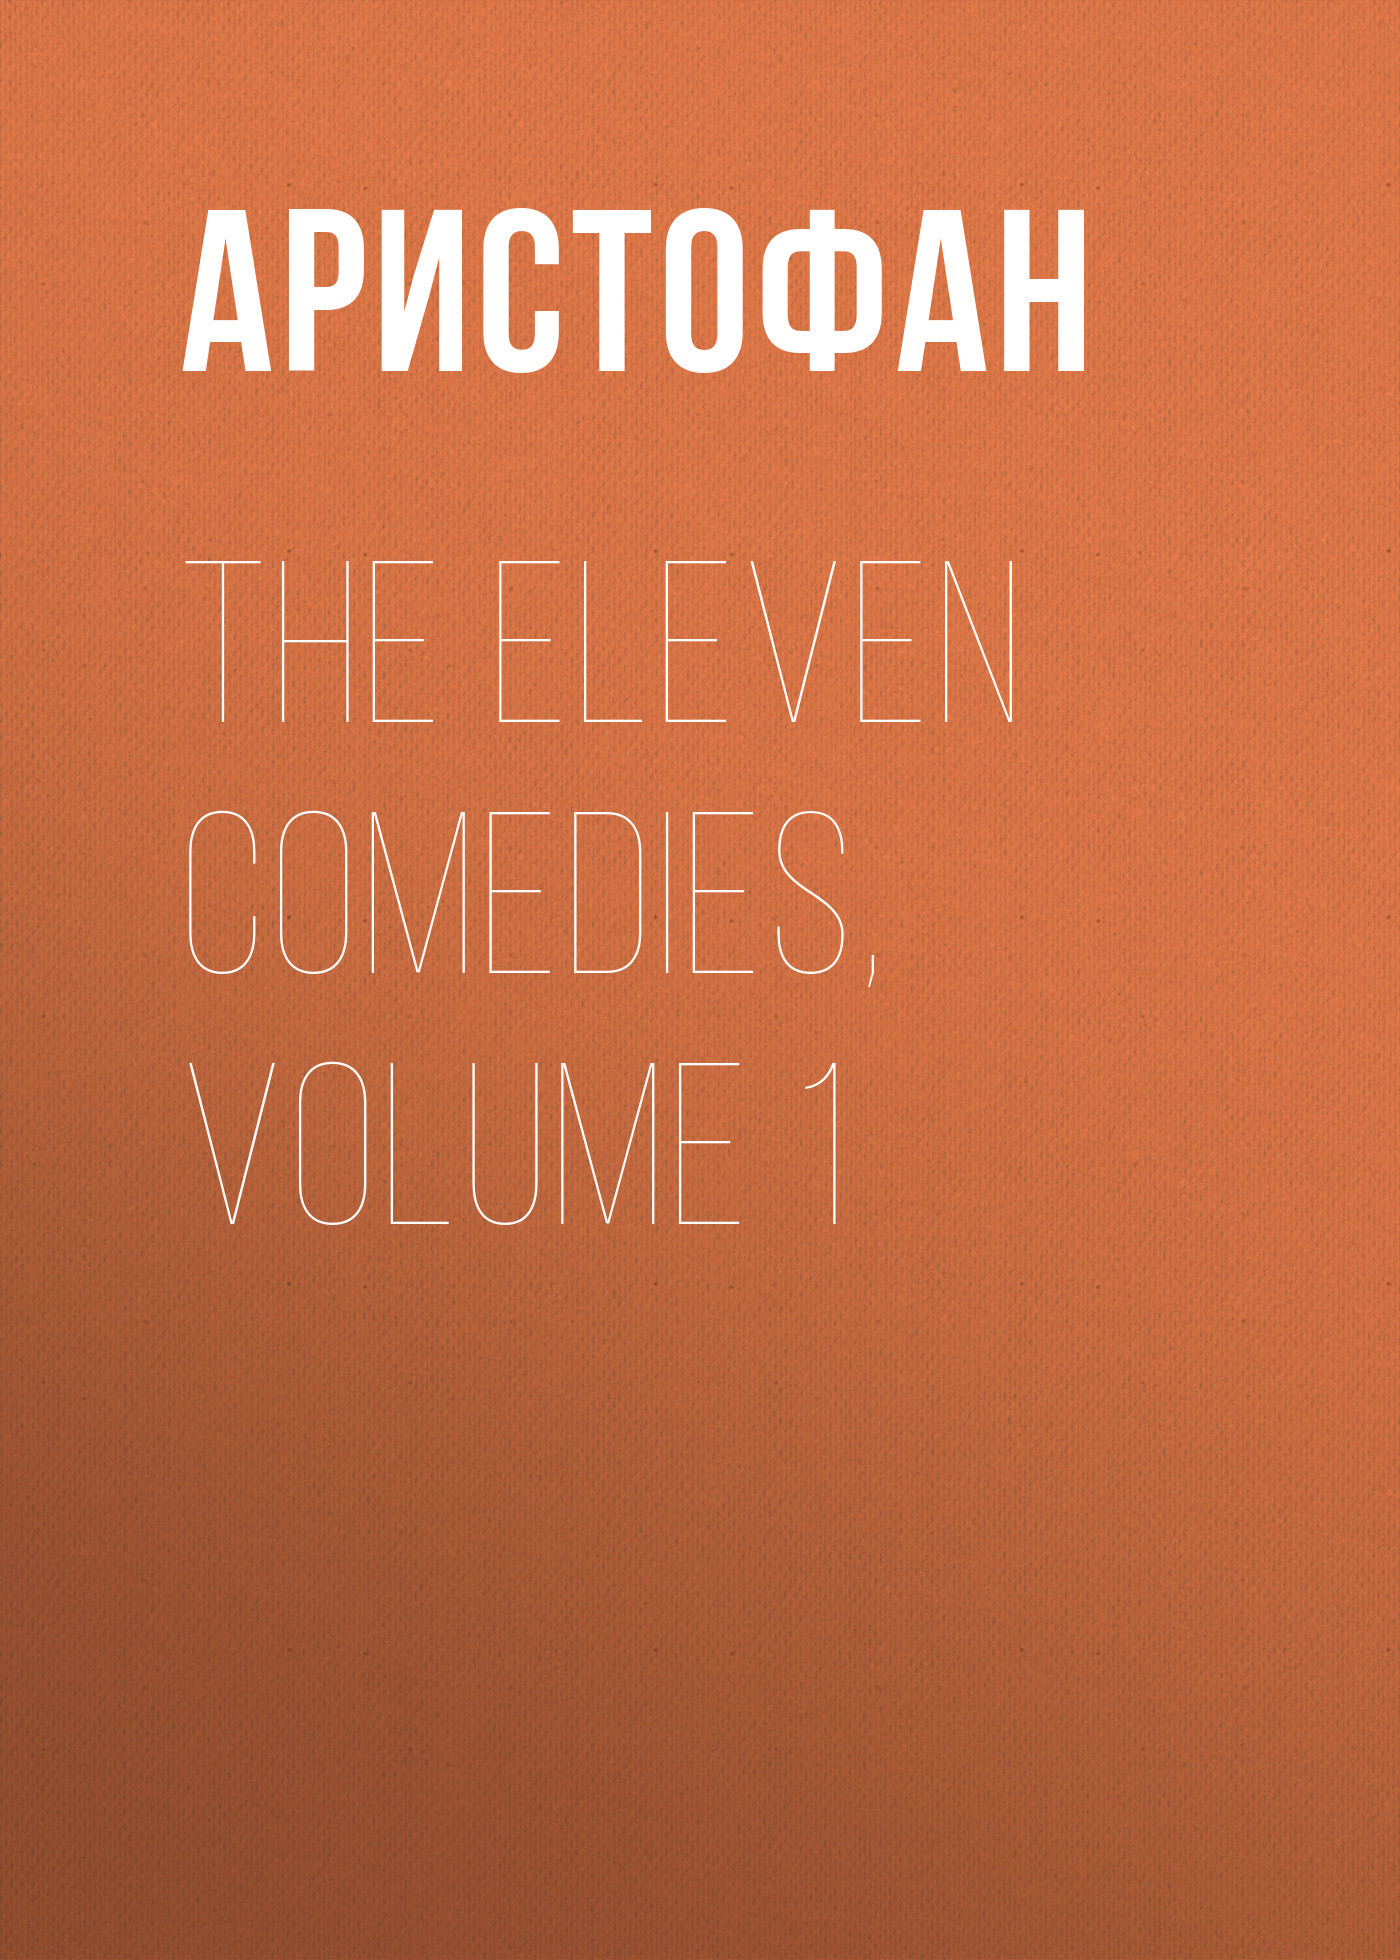 Аристофан The Eleven Comedies, Volume 1 five plays – comedies